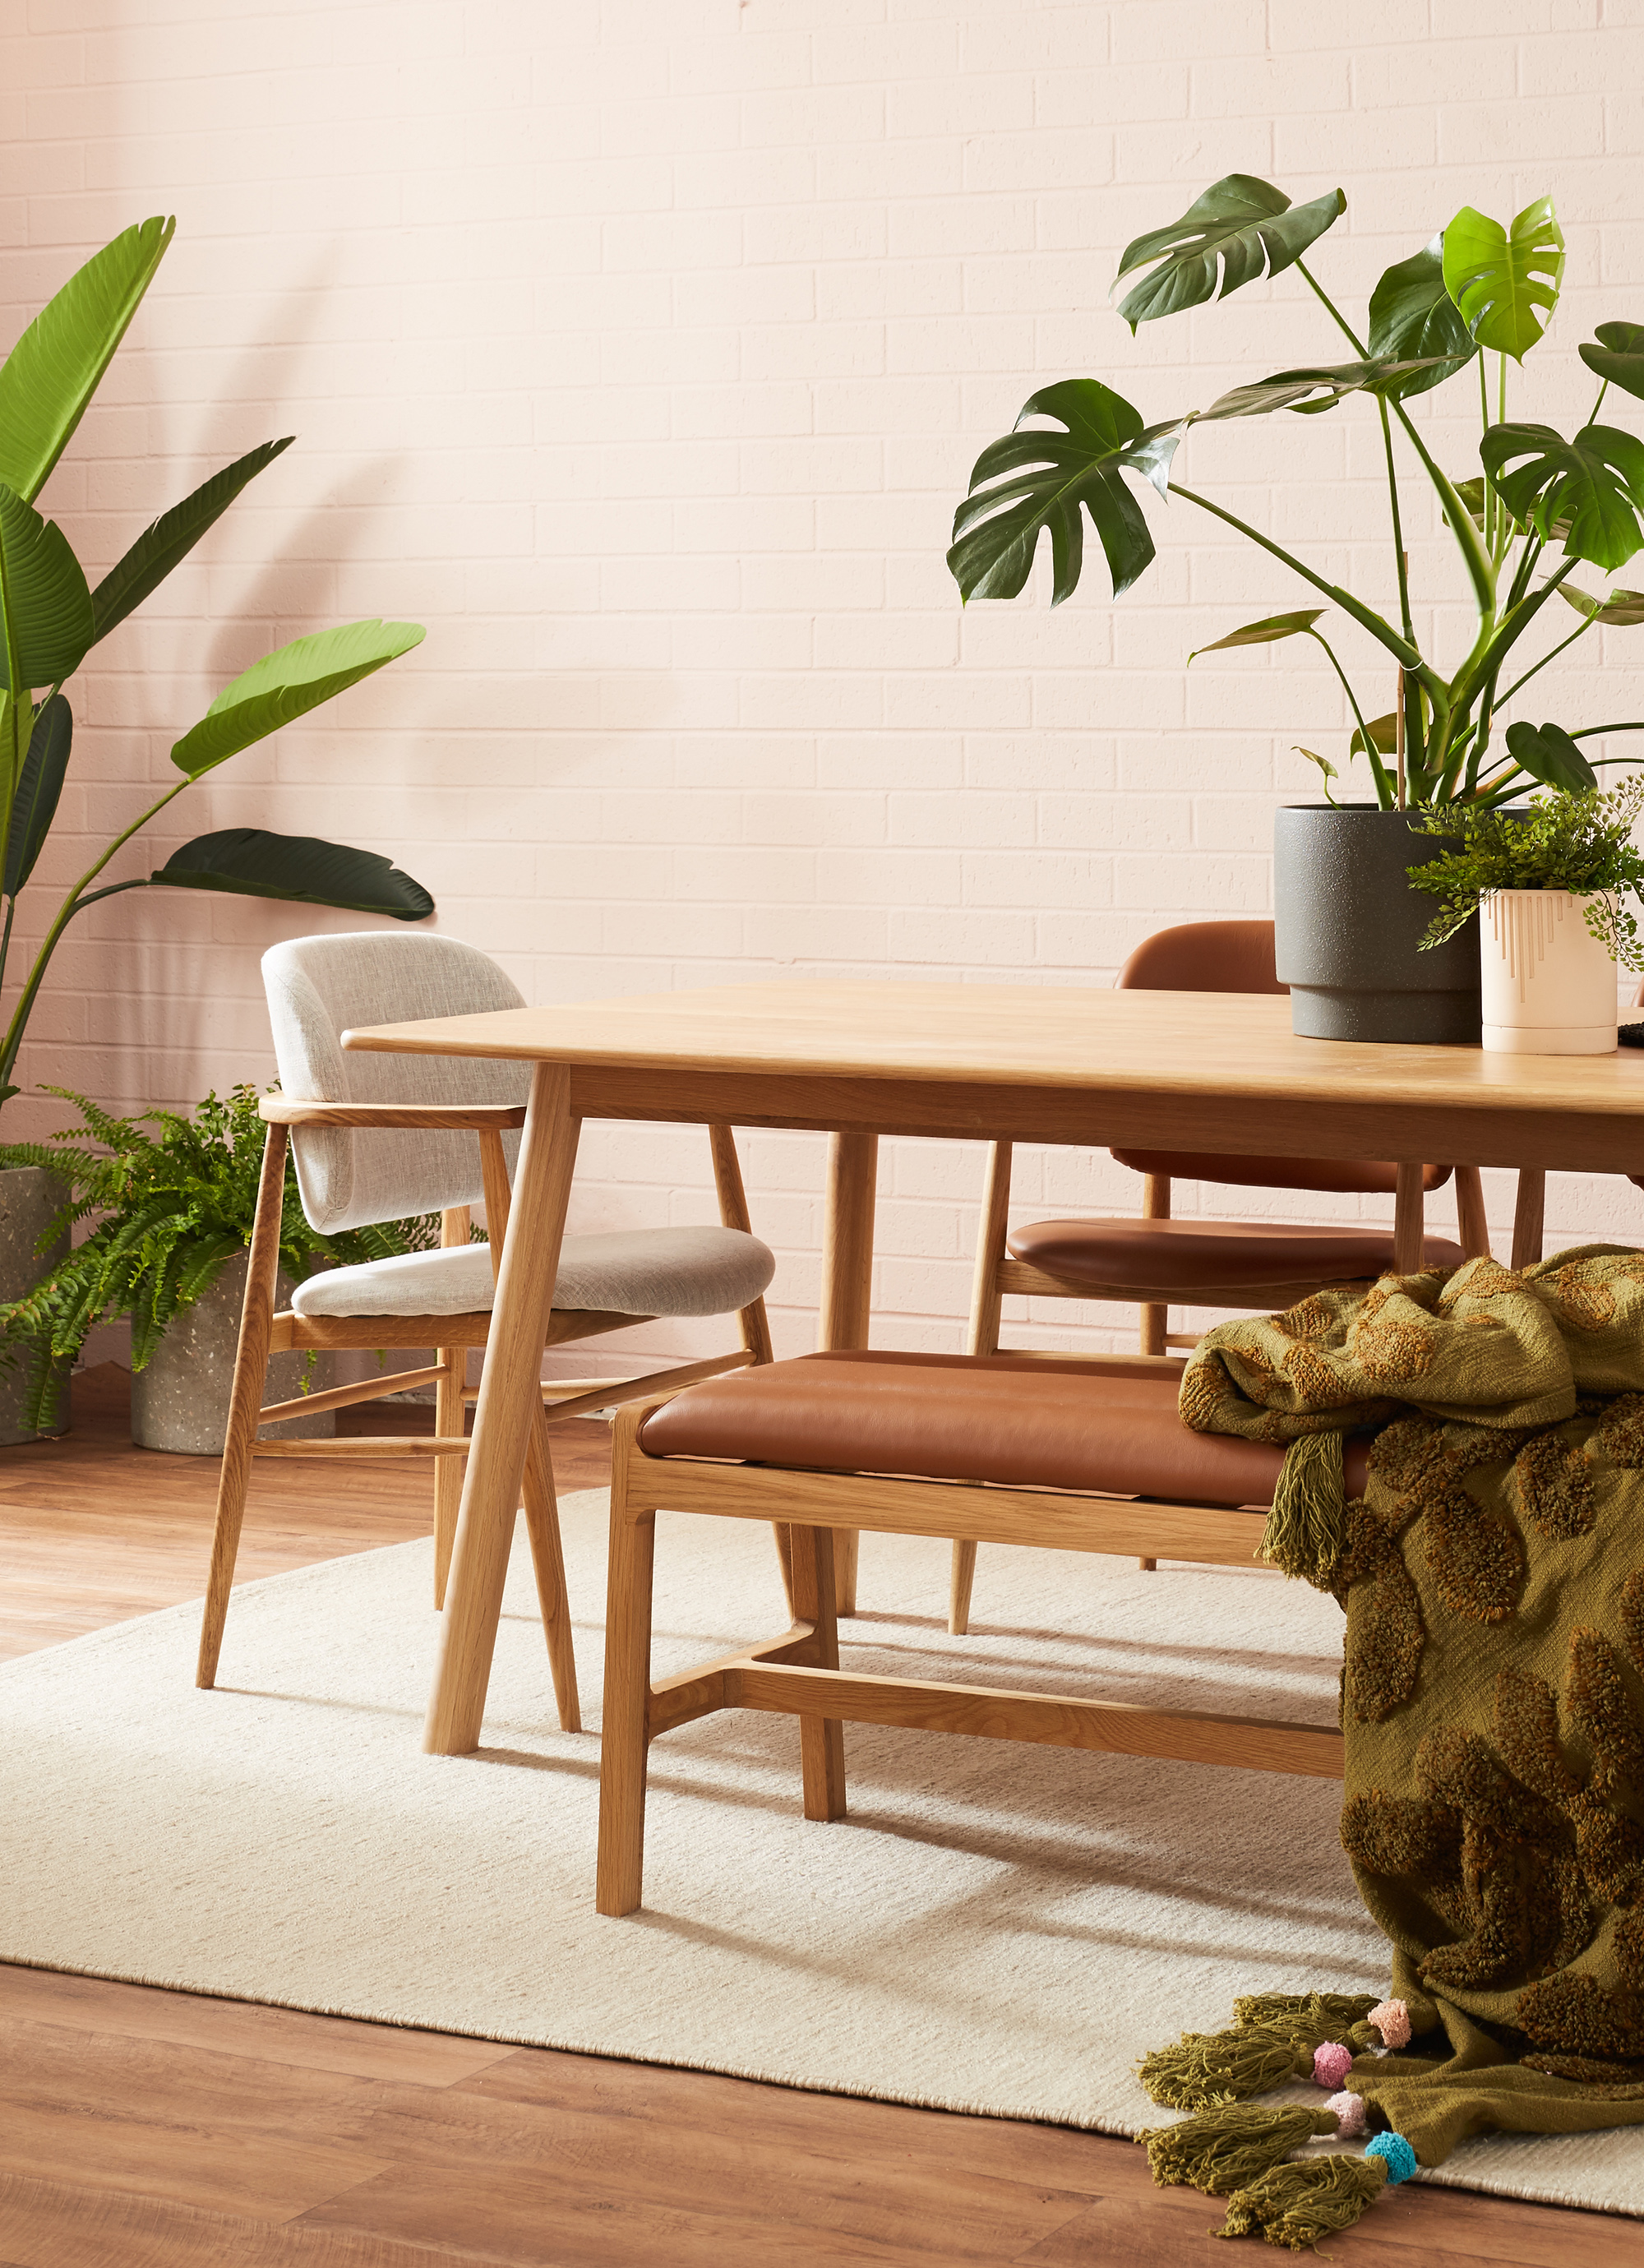 Finland rectangle dining table from Life Interiors